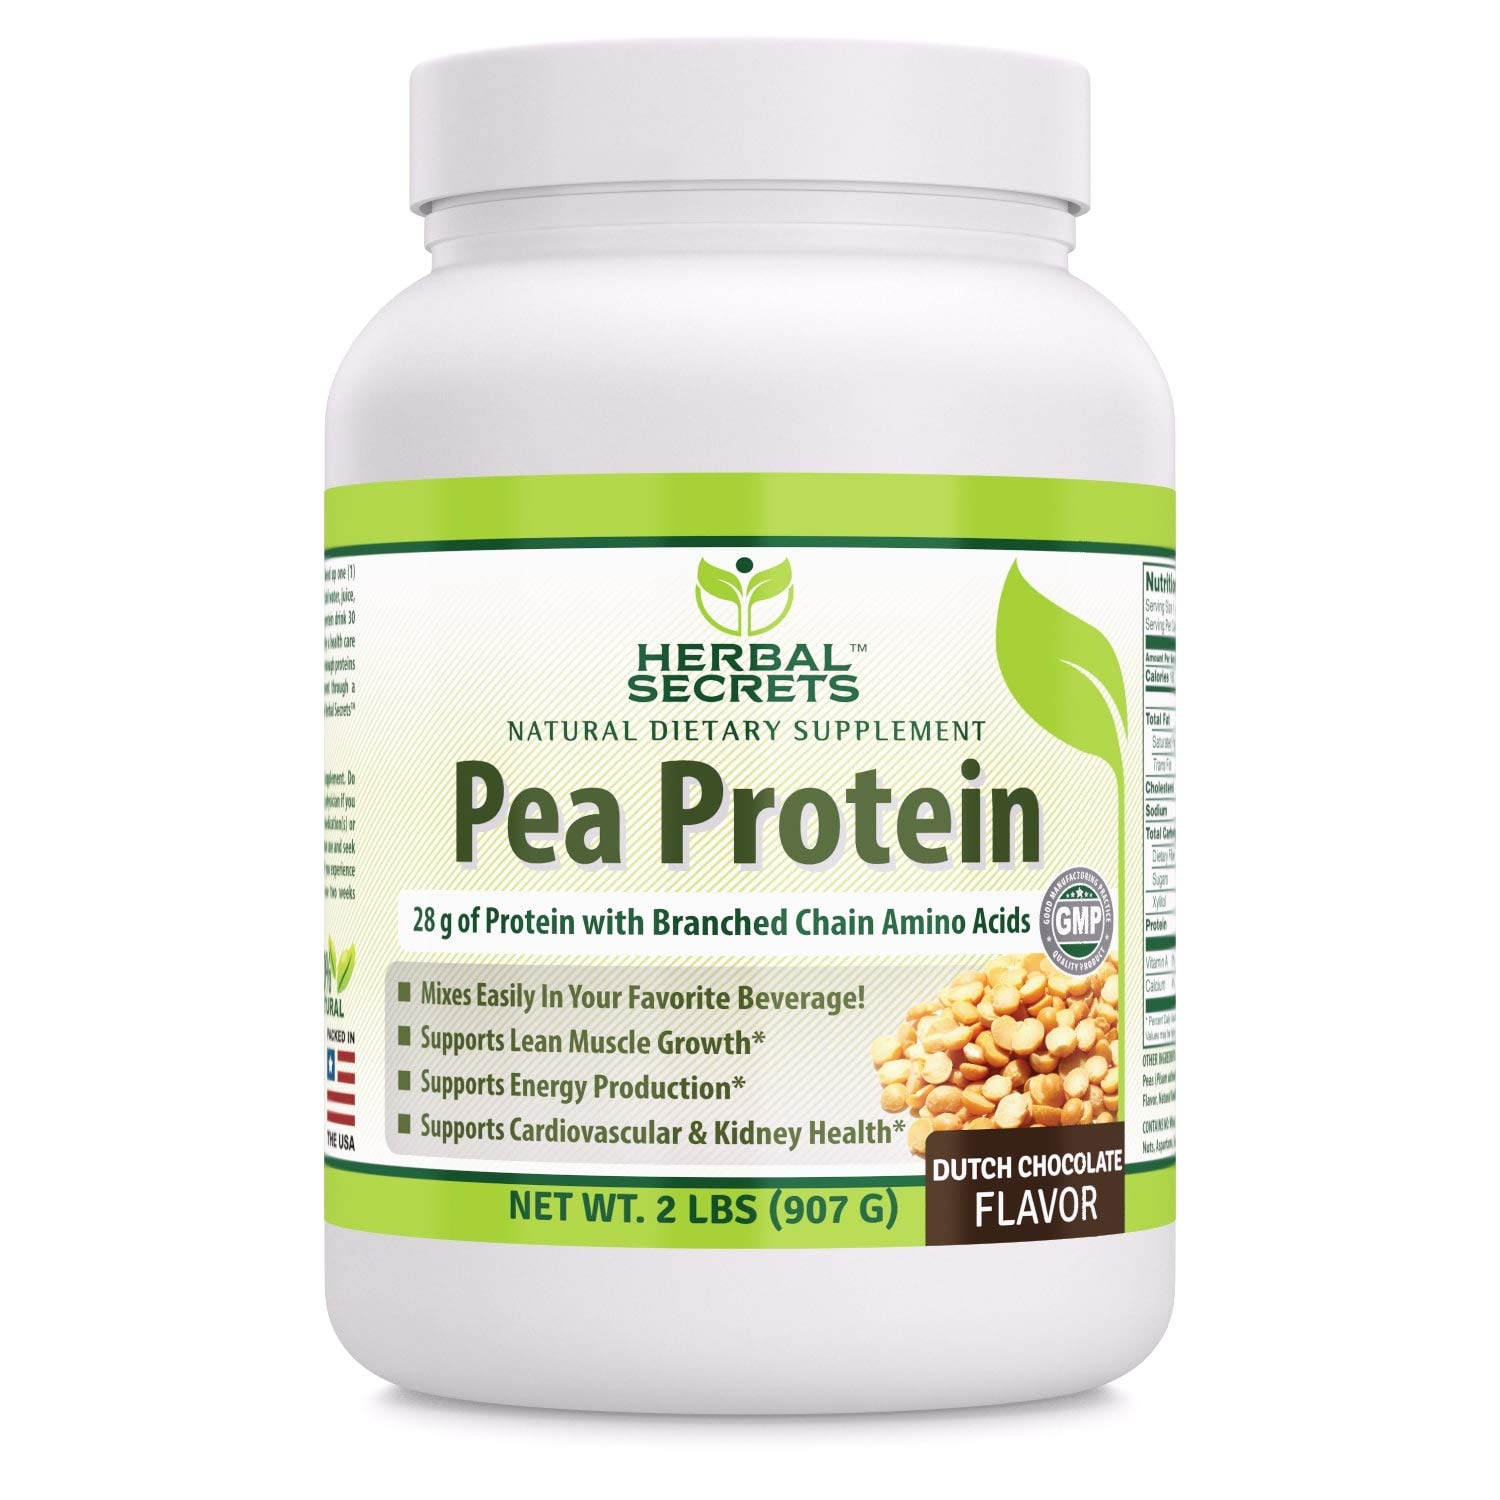 Herbal Secrets Pea Protein Powder Dutch Chocolate Flavor 2 Lbs - (Non-GMO) Vegetable Protein No Soy, No Dairy - Supports Lean Muscle Growth, Energy Production, Cardiovascular & Kidney Health*